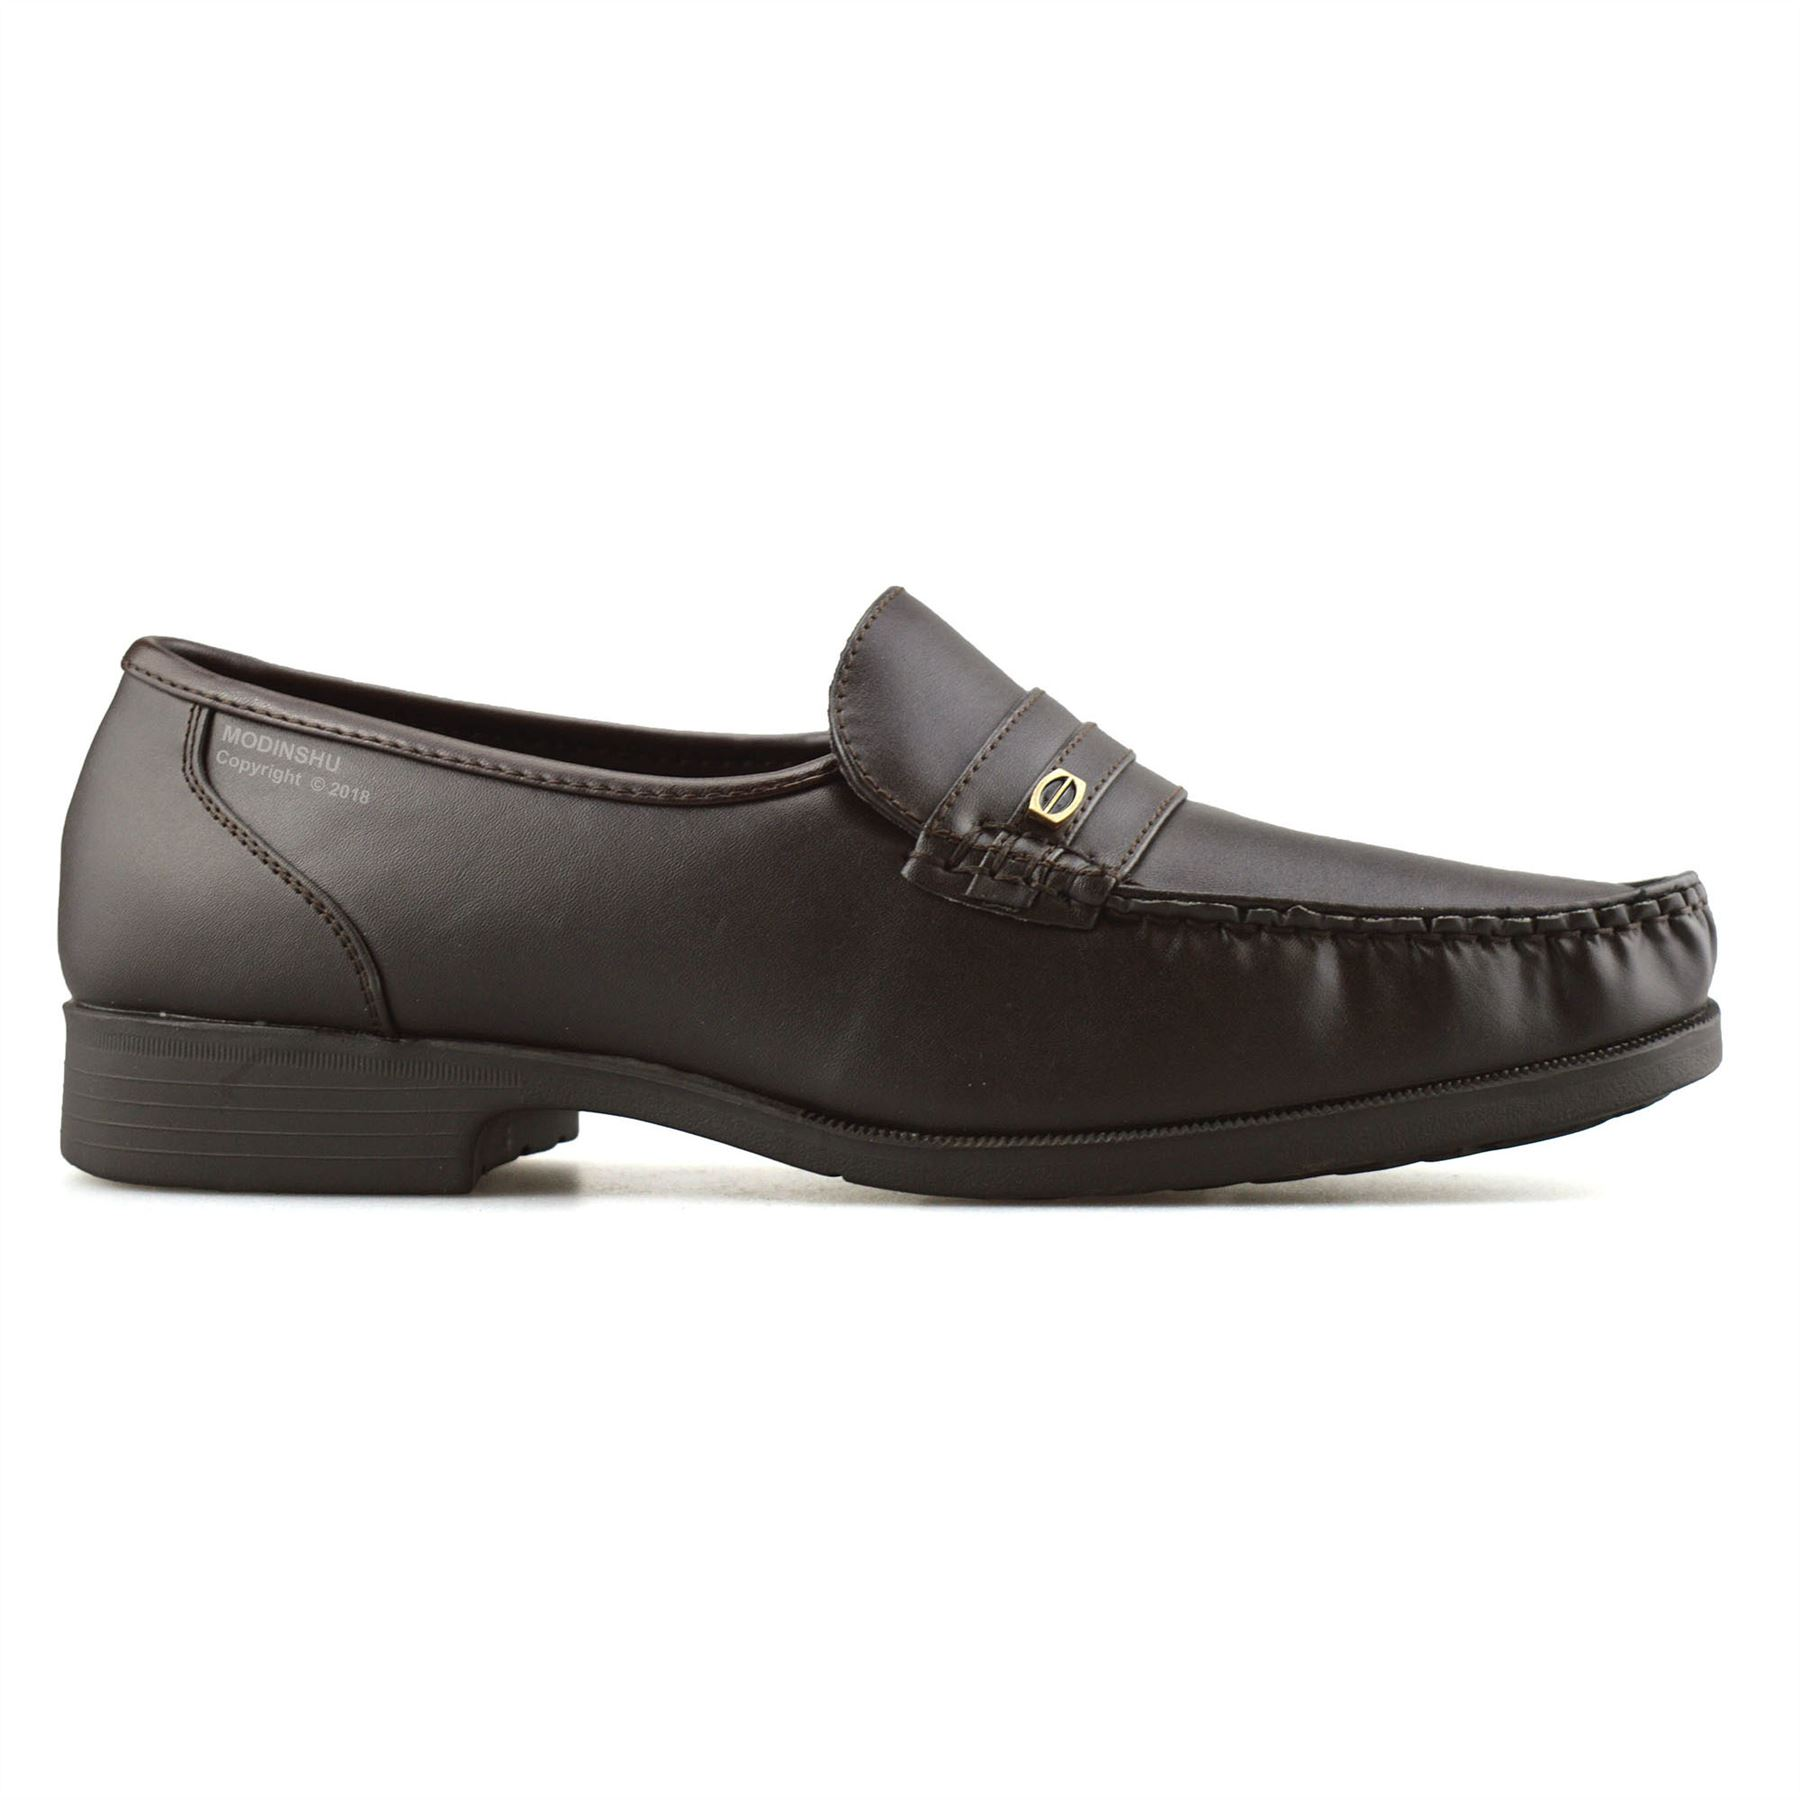 Mens-New-Slip-On-Casual-Smart-Memory-Foam-Mocassin-Designer-Loafers-Shoes-Size thumbnail 20